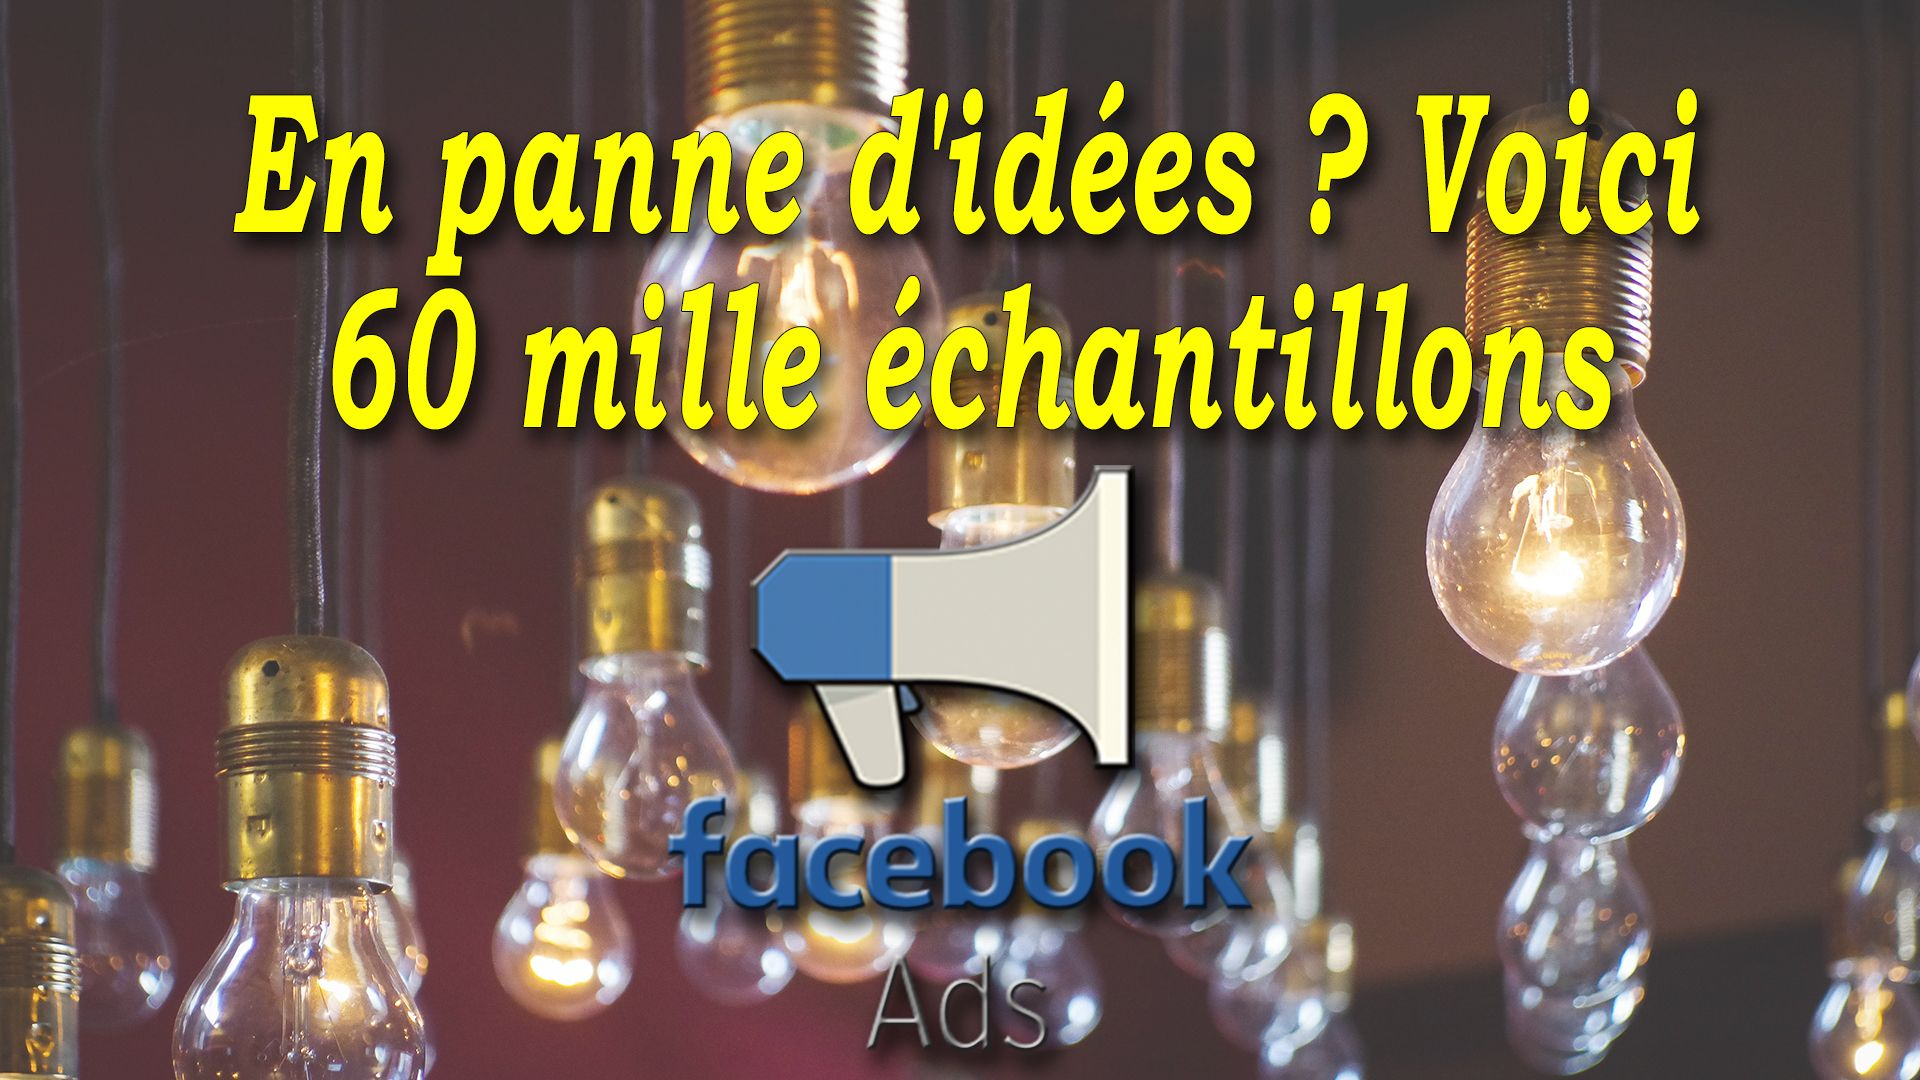 En panne d'idées ? Voici 60 mille échantillons Facebook Ads #GrowthHacking #WebMarketing #FormationGrowthHacking #CentreDeFormationFrance #TunnelAARRR #AARRR #SocialMedia #CommunityManagement #SEO #facebookads